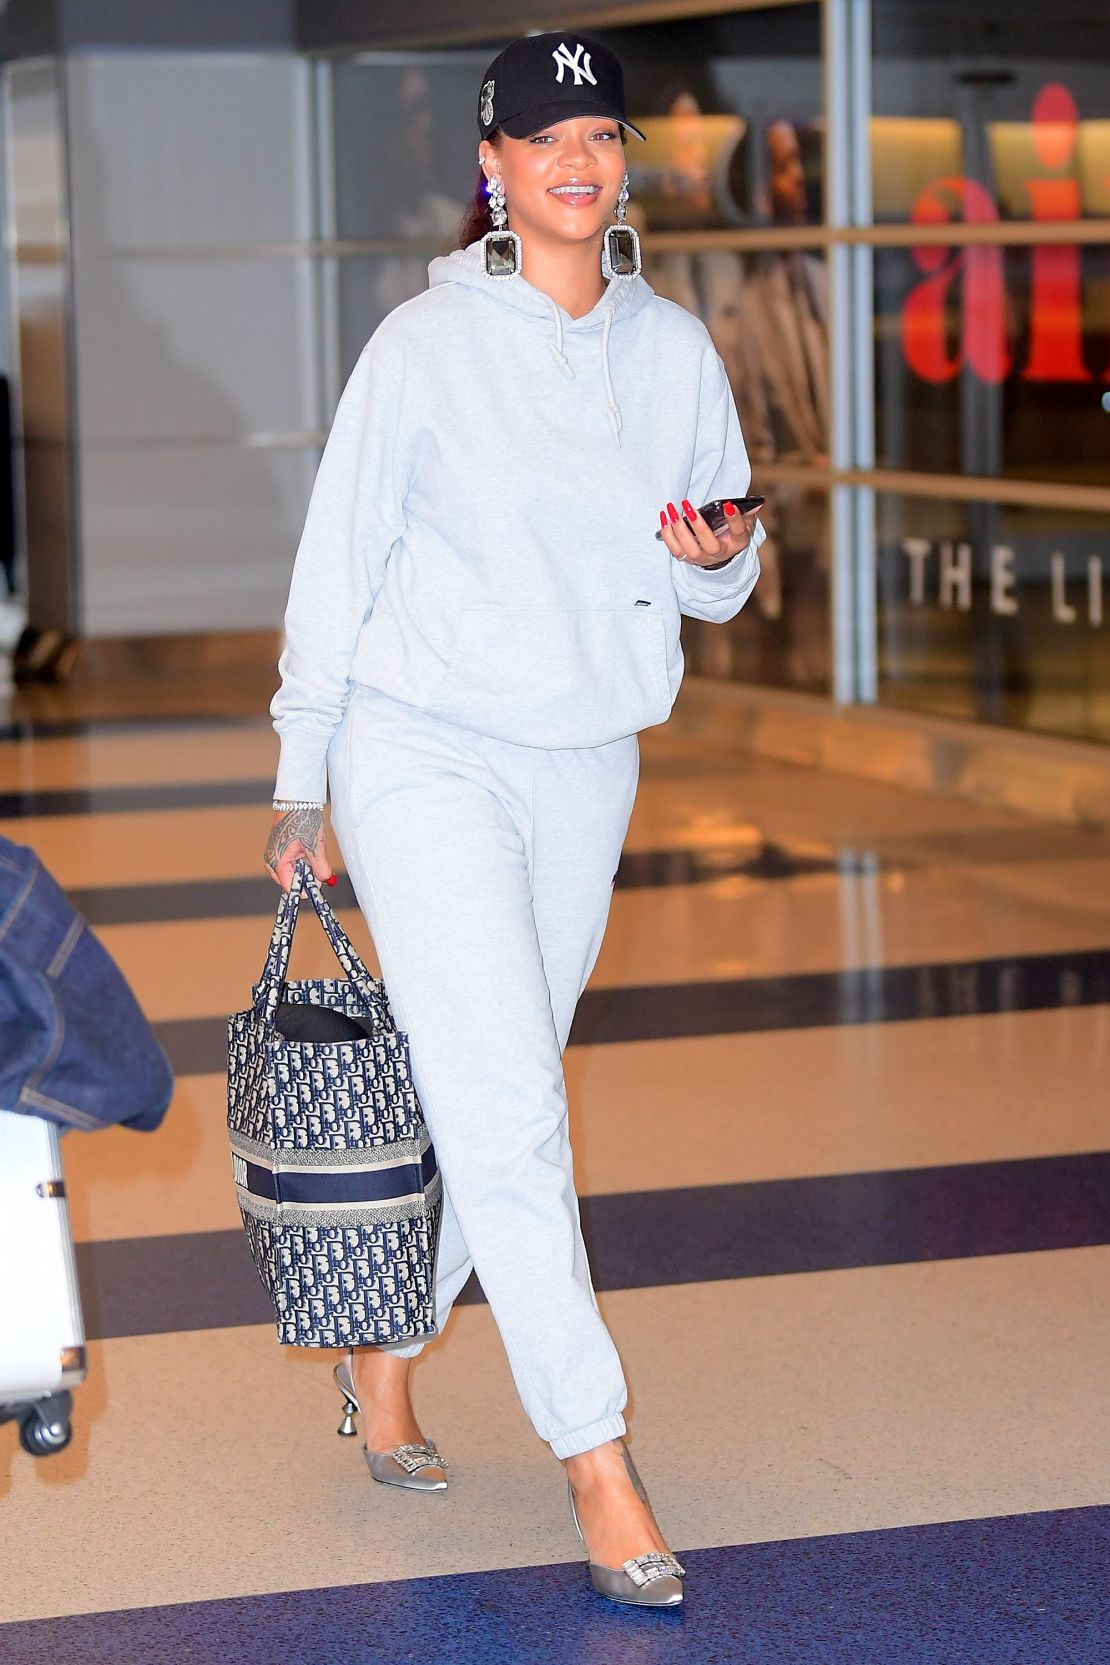 EXCLUSIVE: Rihanna Pairs Manolo Blahnik Heels With A Grey Sweatsuit As She Jets Into NYC For Her Pop Up Shop Opening